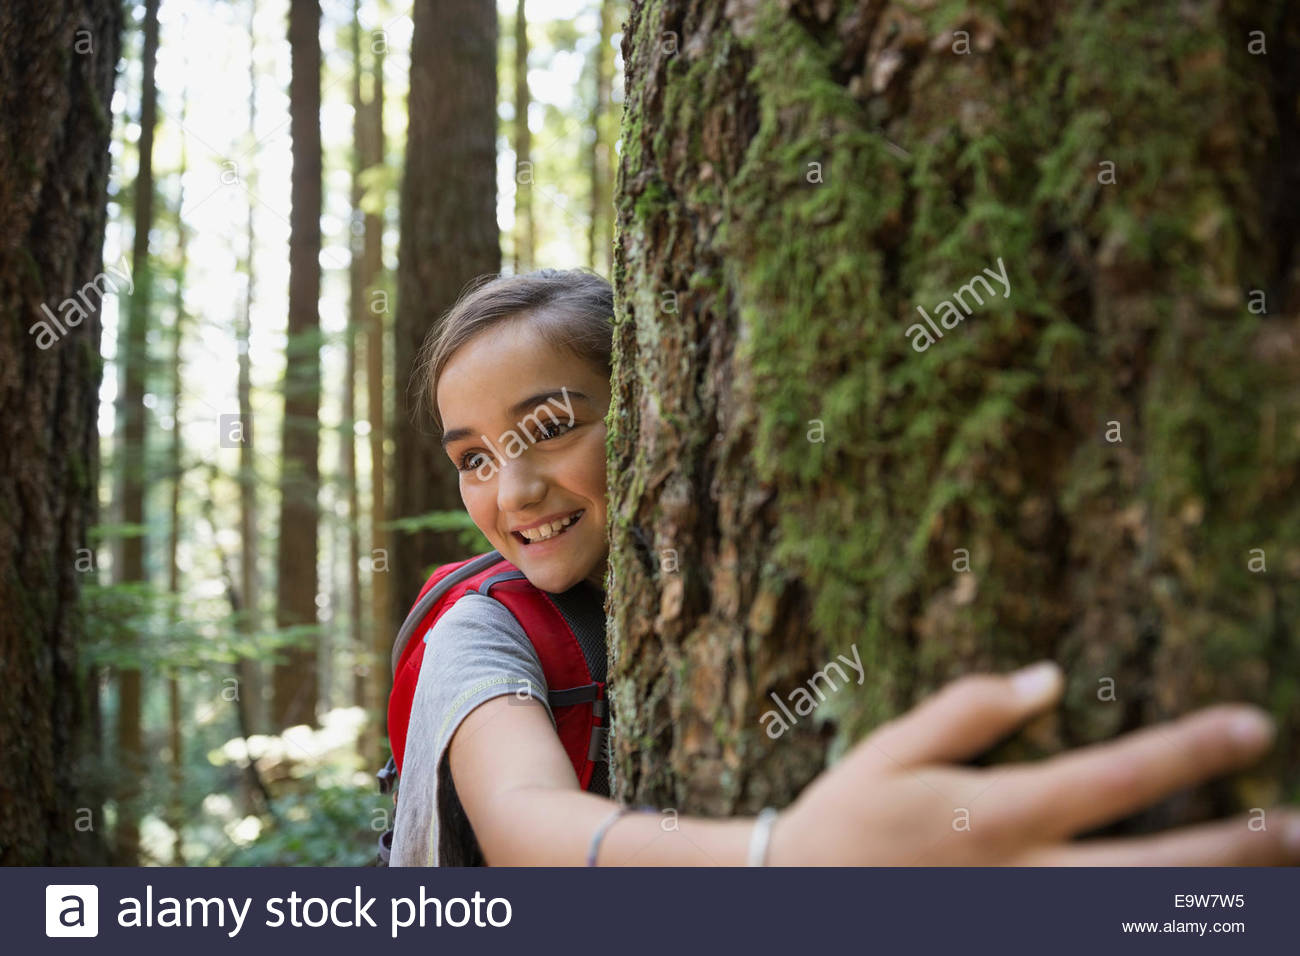 Smiling girl hugging tree trunk in woods - Stock Image